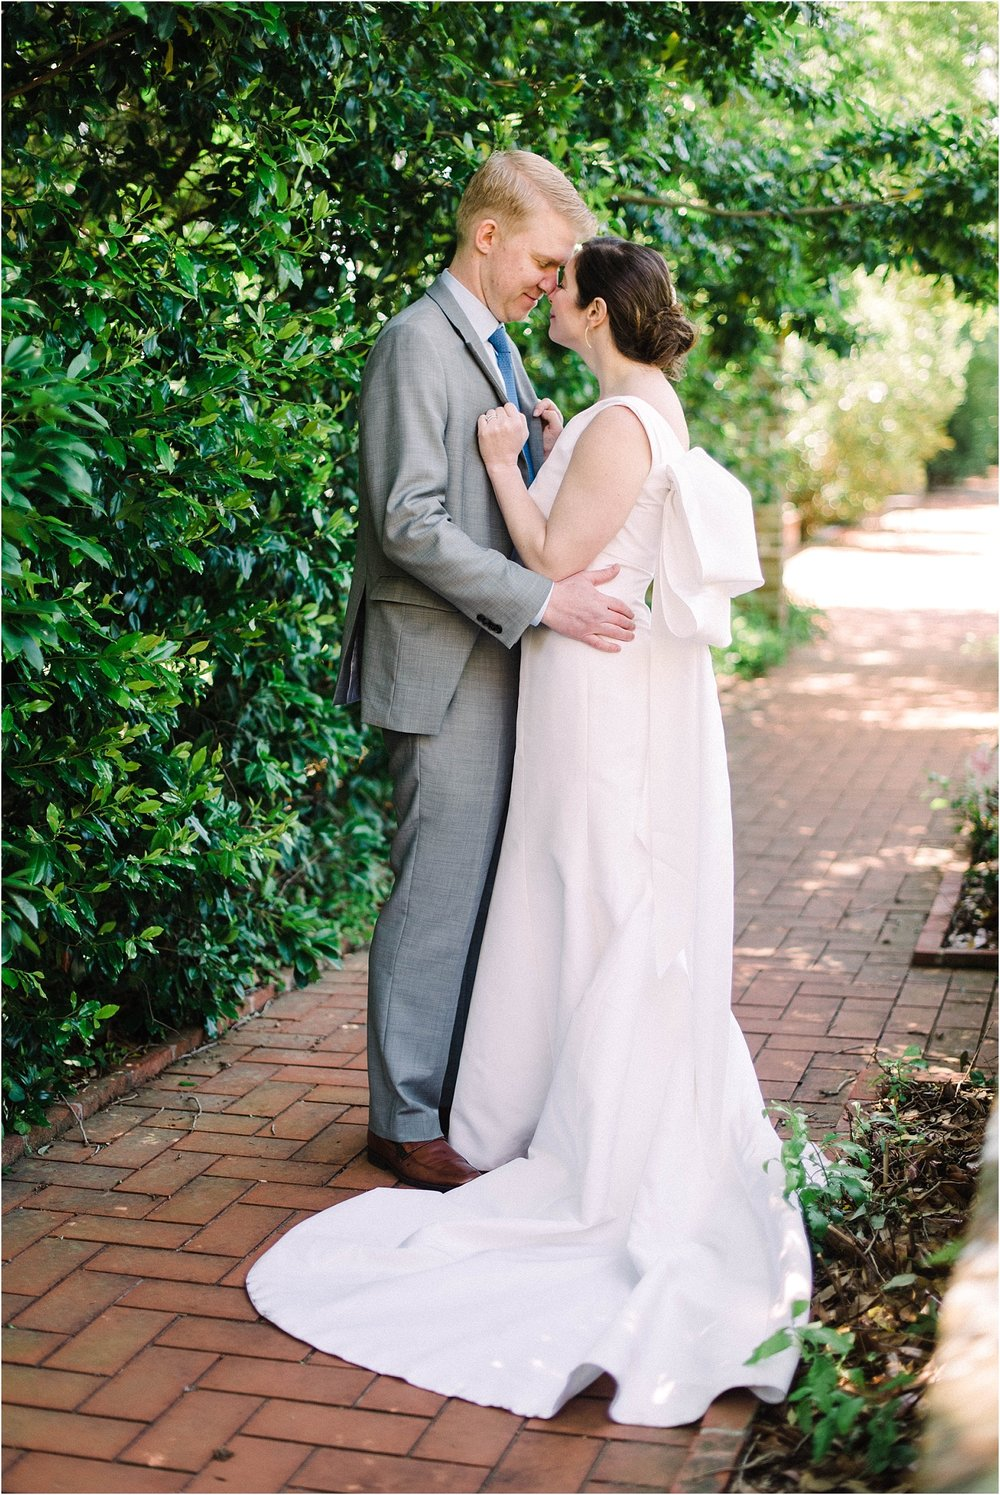 Heather + Scott-Longue-Vue-house-and-gardens-black-tie-wedding-photos_Gabby Chapin_Print_0118_BLOG.jpg